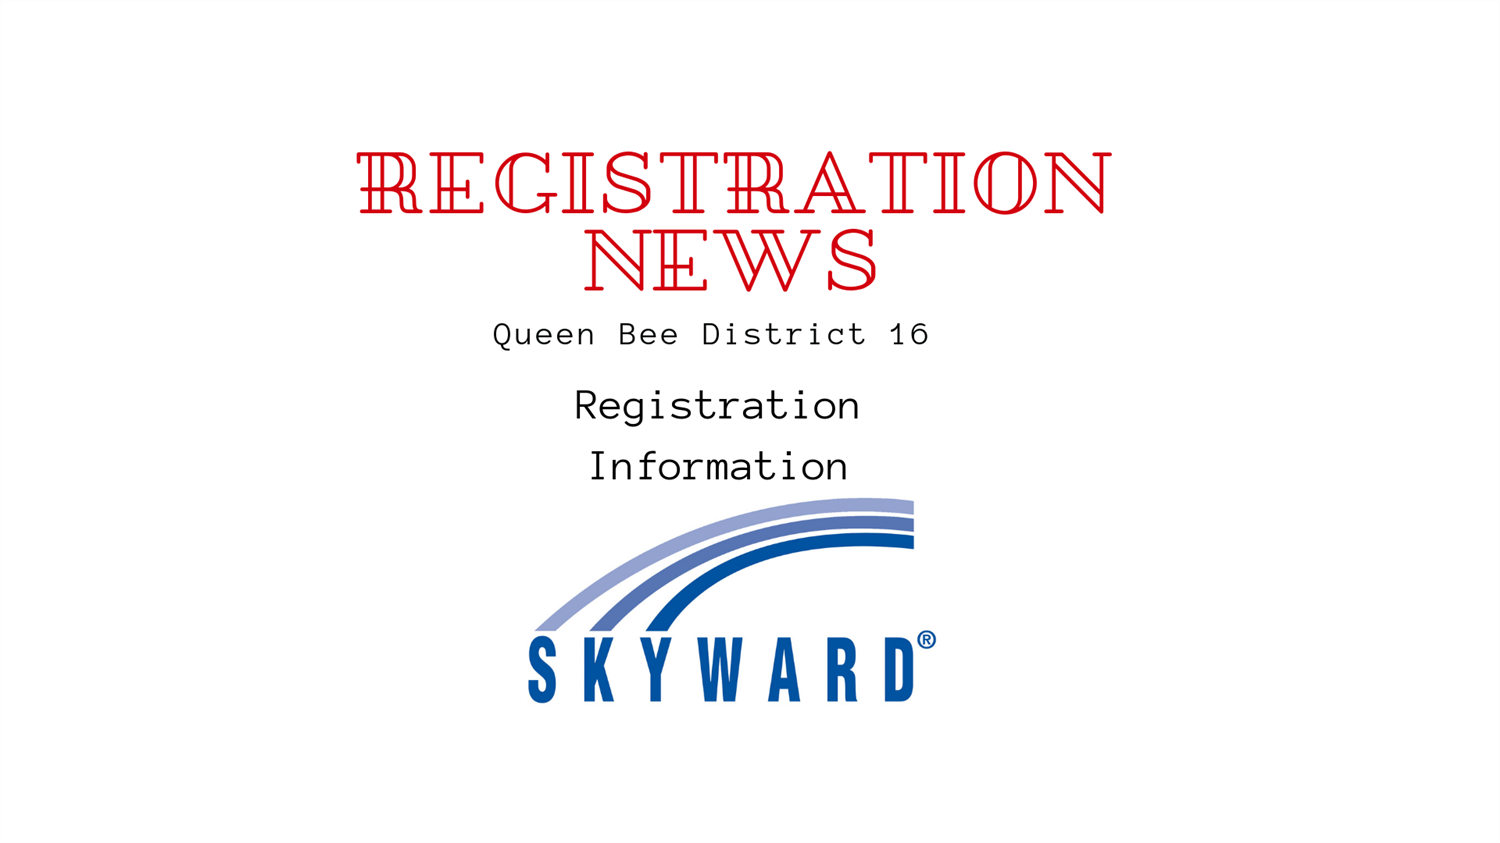 Registration News